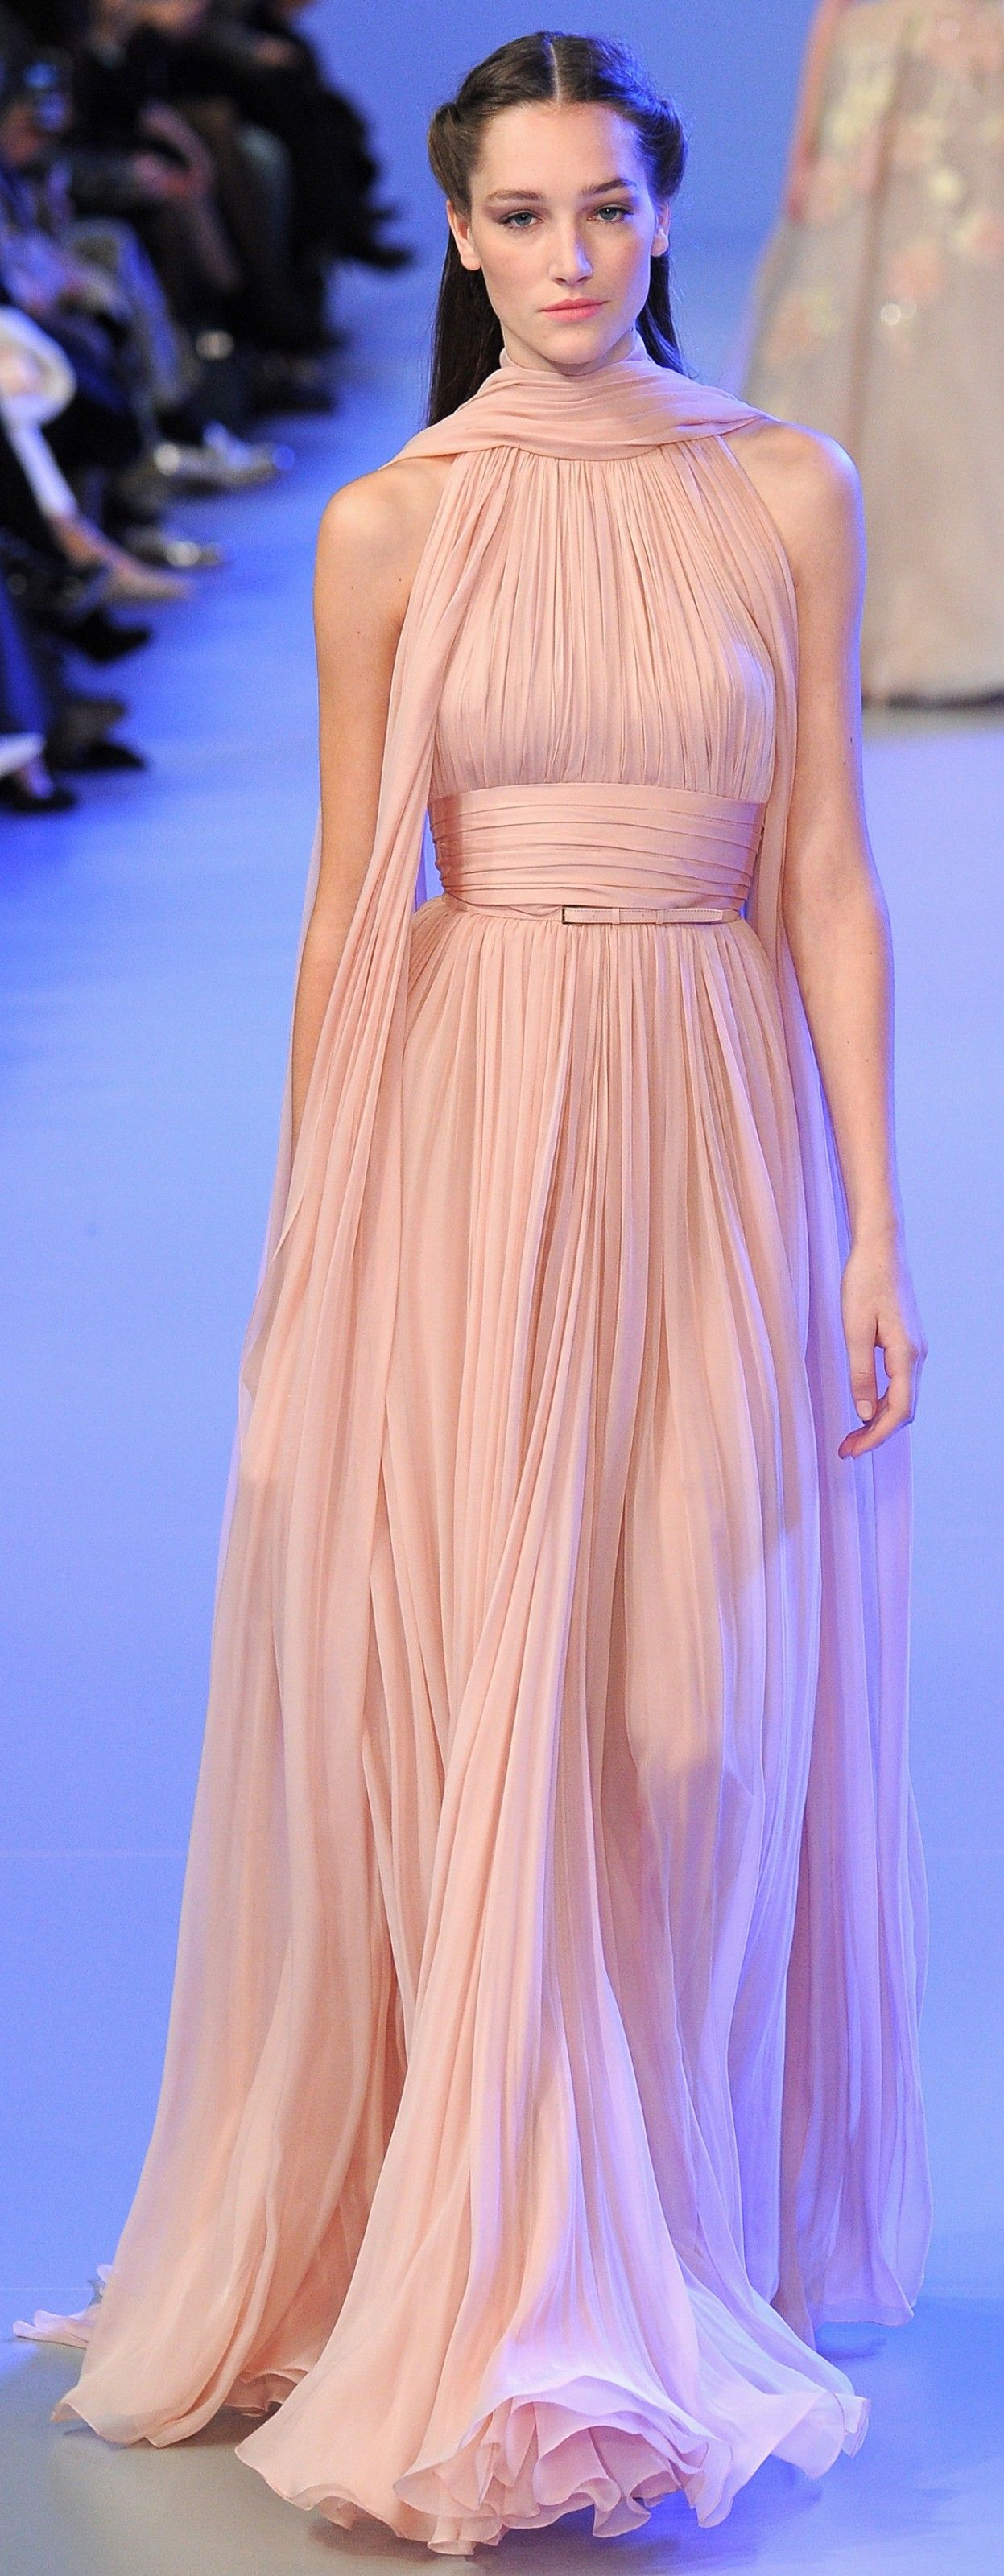 Elie Saab Spring 2011 Couture Fashion Show   Elie saab, Couture y ...